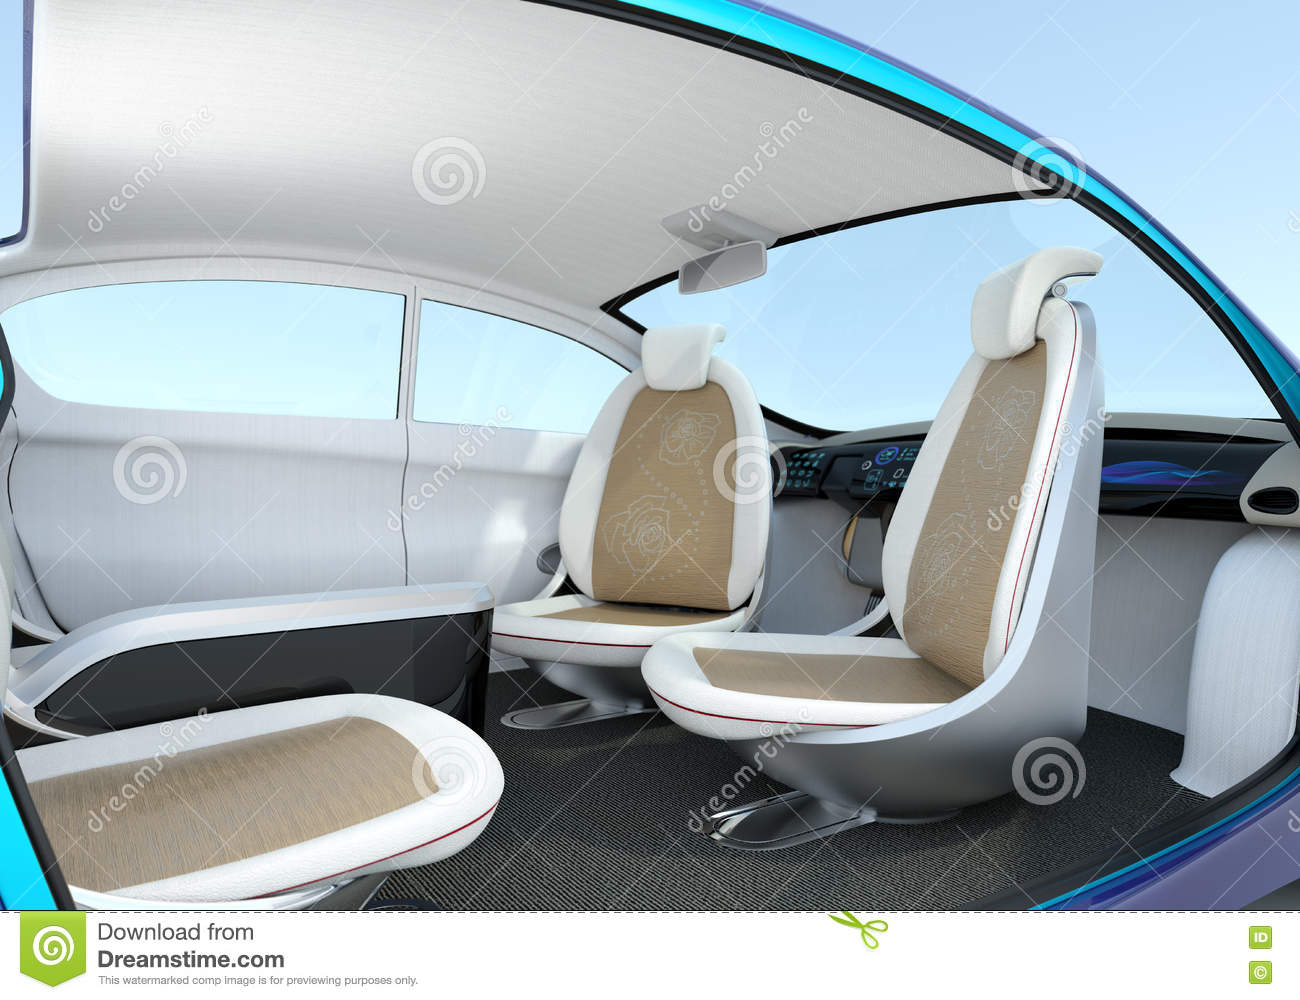 self driving car interior concept stock illustration illustration of business computer 70989840. Black Bedroom Furniture Sets. Home Design Ideas